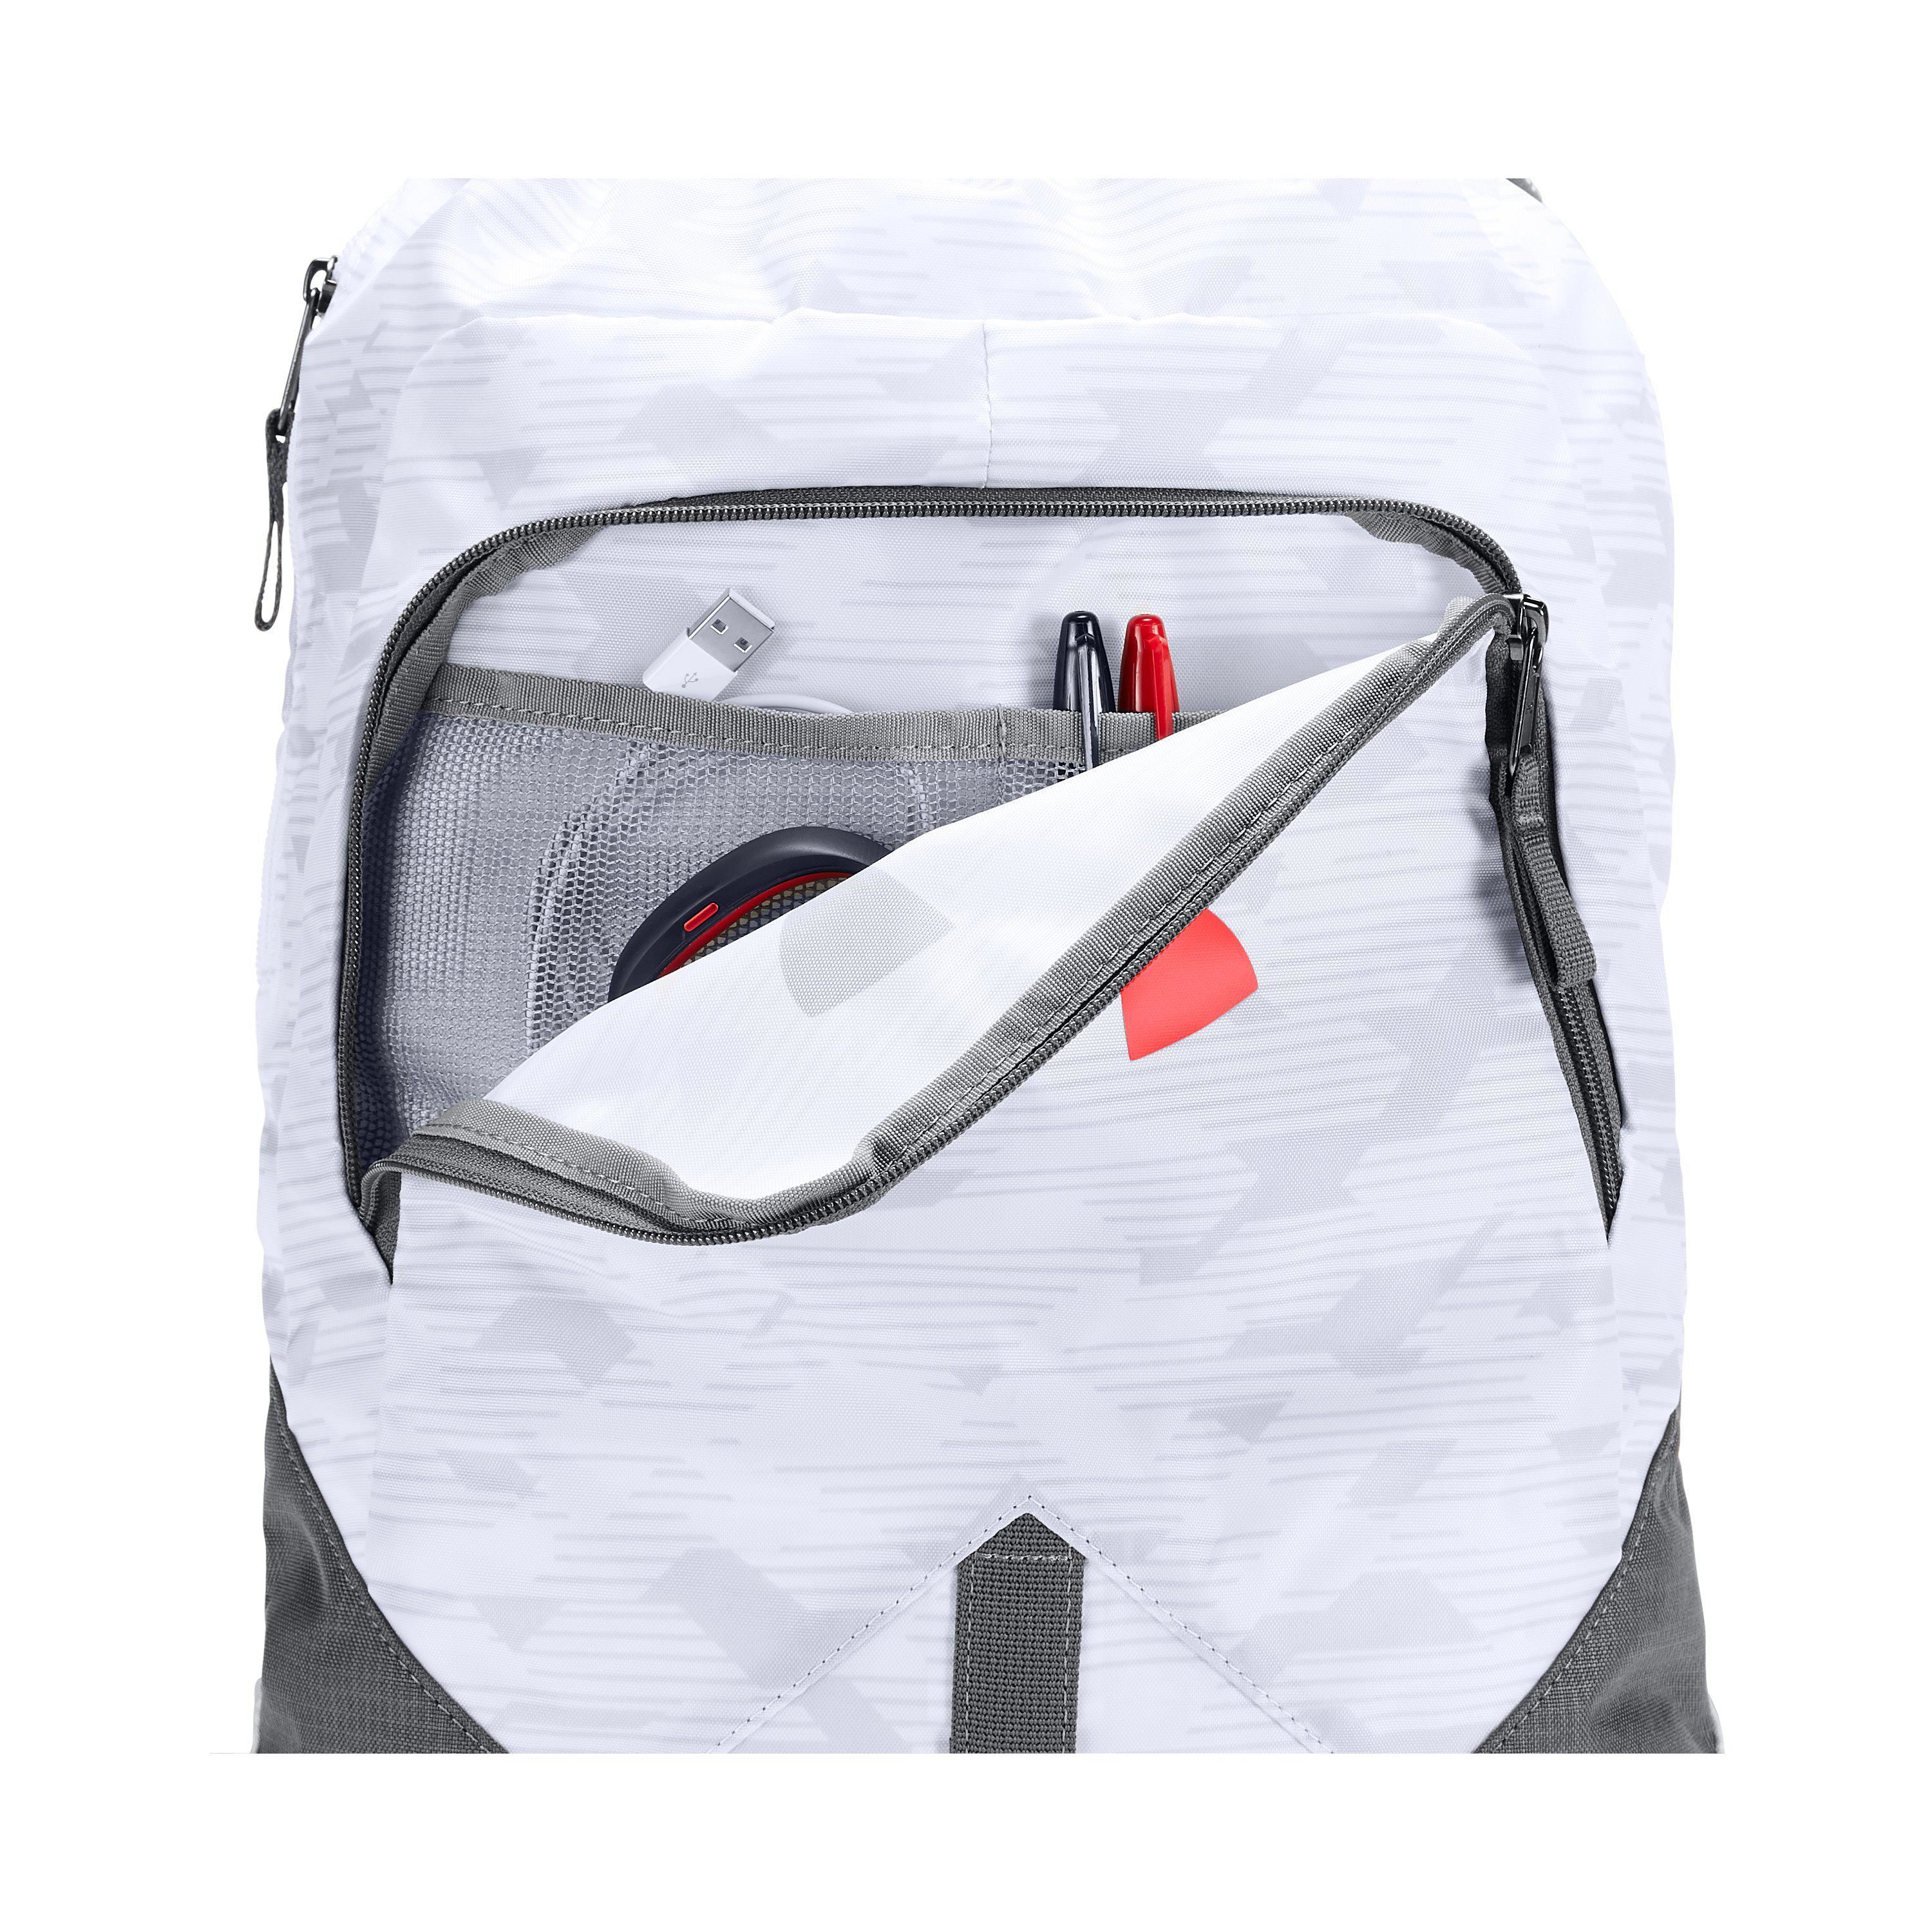 0931a11a195 Under Armour Ua Undeniable Sackpack in White - Lyst